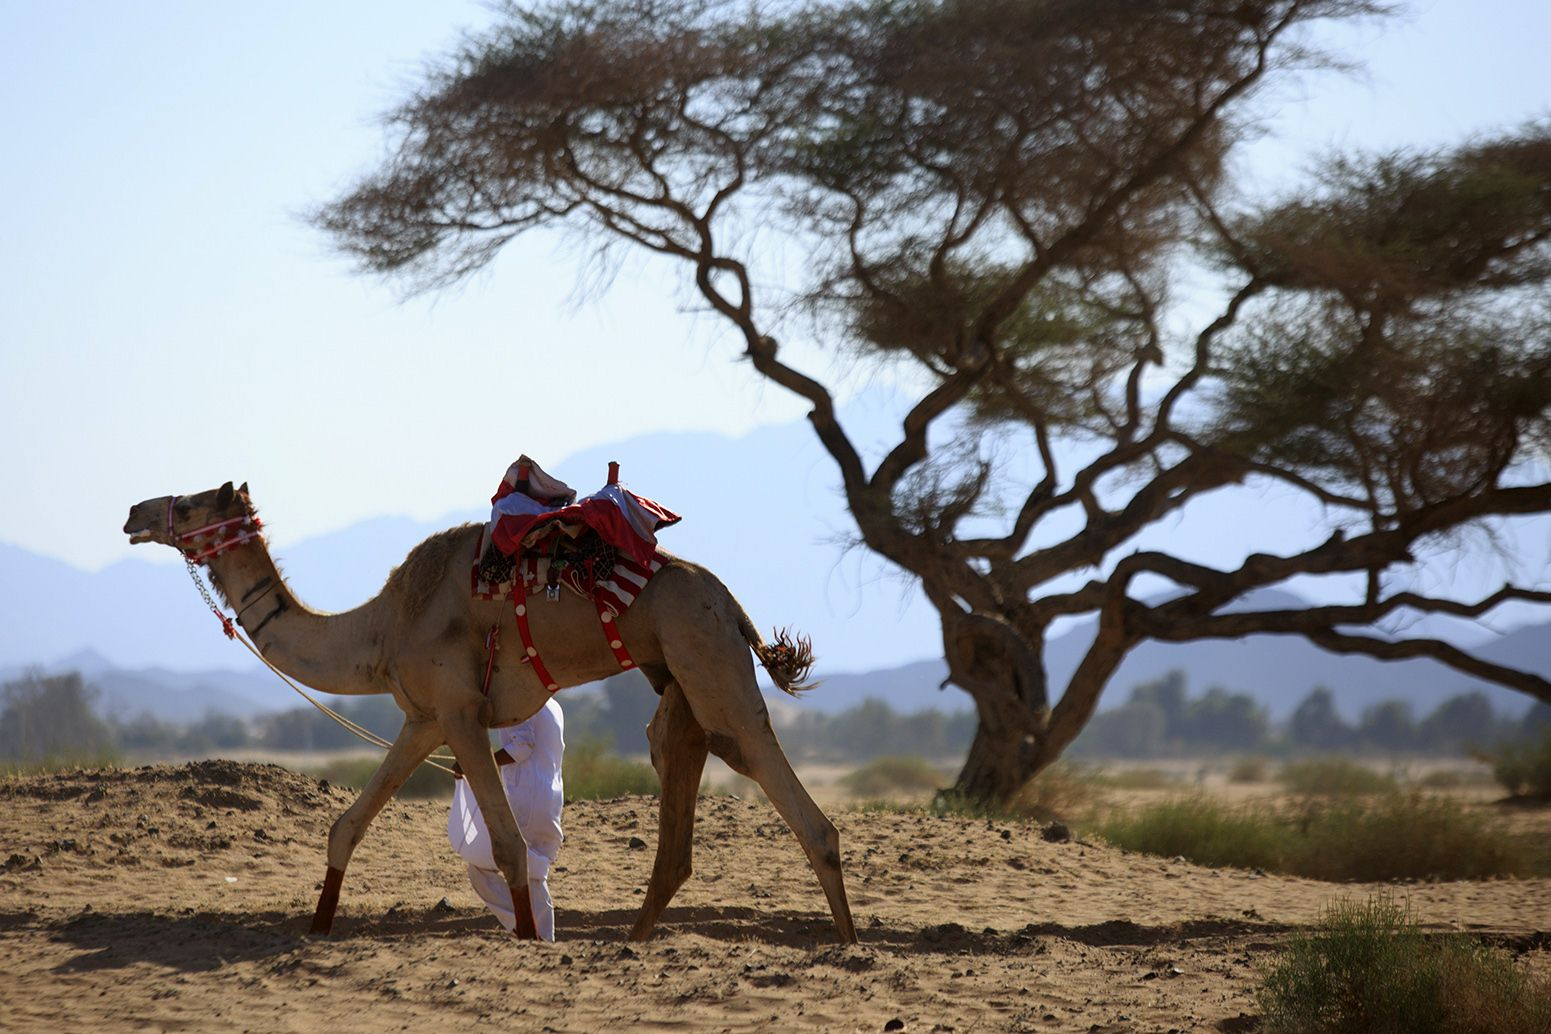 A Saudi man leads a camel ahead of an annual race in celebration of Eid al-Fitr which marks the end of the Muslim holy fasting month of Ramadan, in the town of Abu Ajaj northwest of the Saudi capital Riyadh in the Tabuk region, on July 18, 2015. Photo: AFP